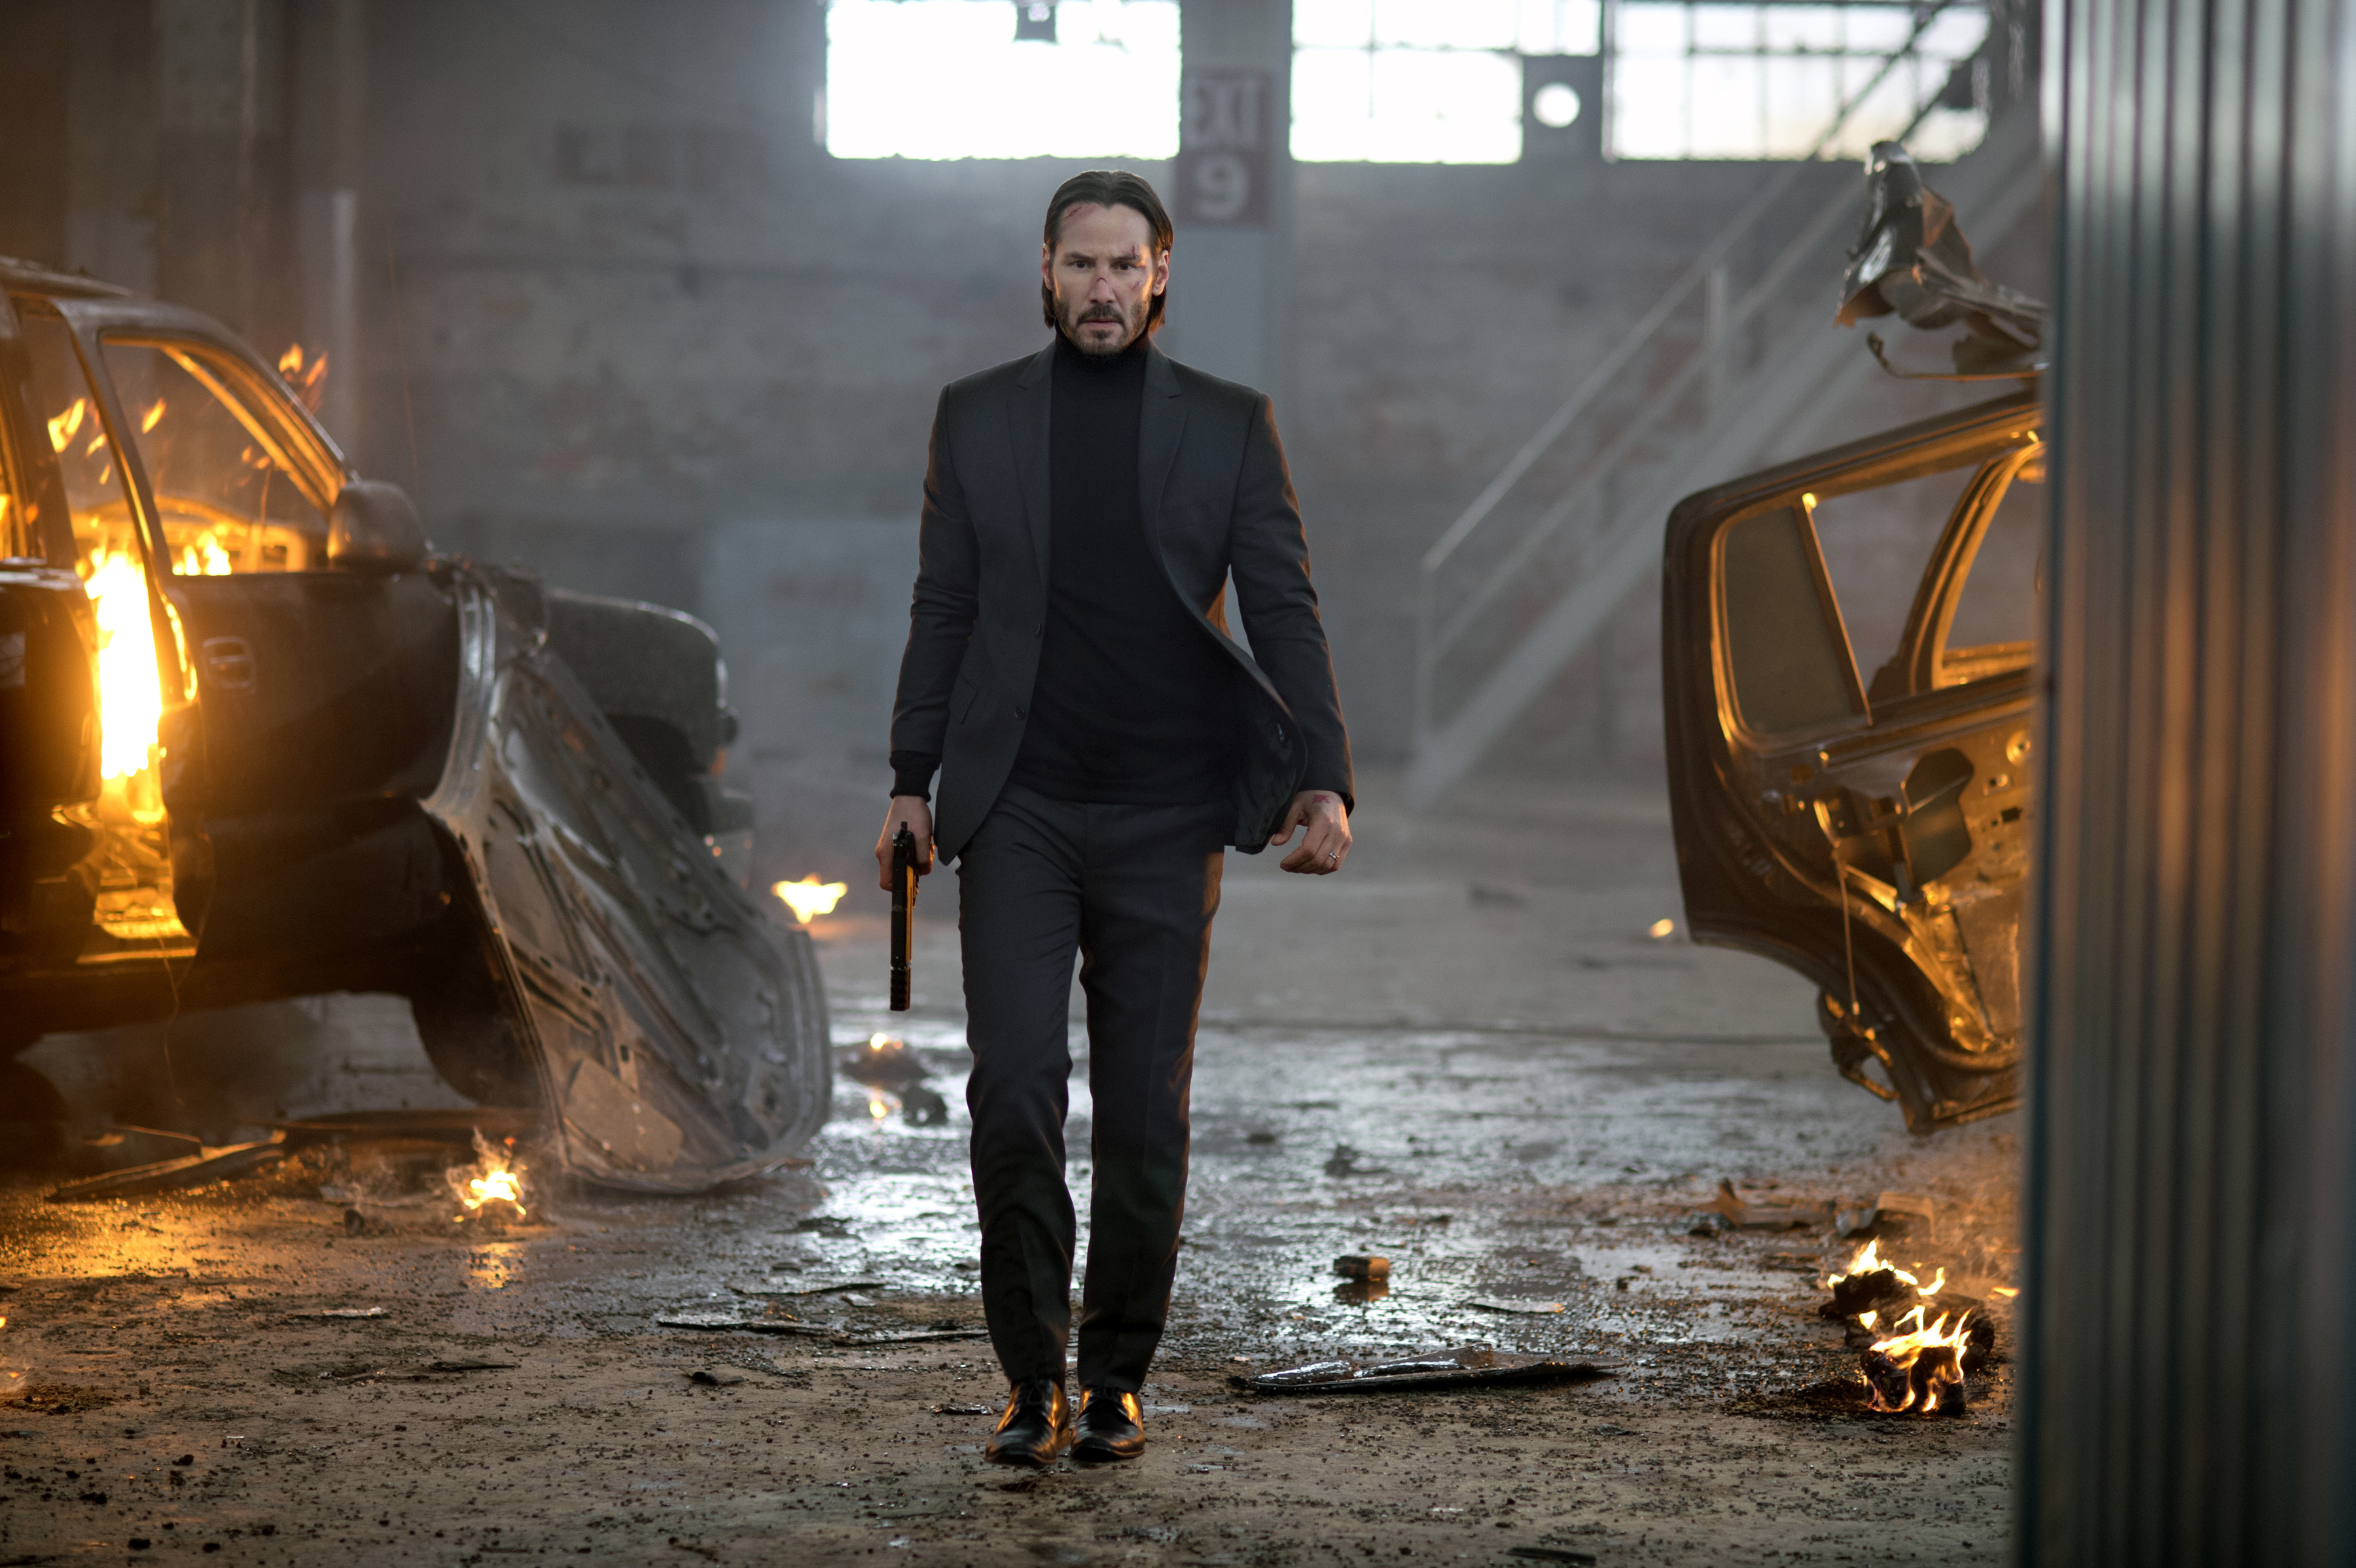 Keanu Reeves stars as a hitman out for revenge in John Wick.